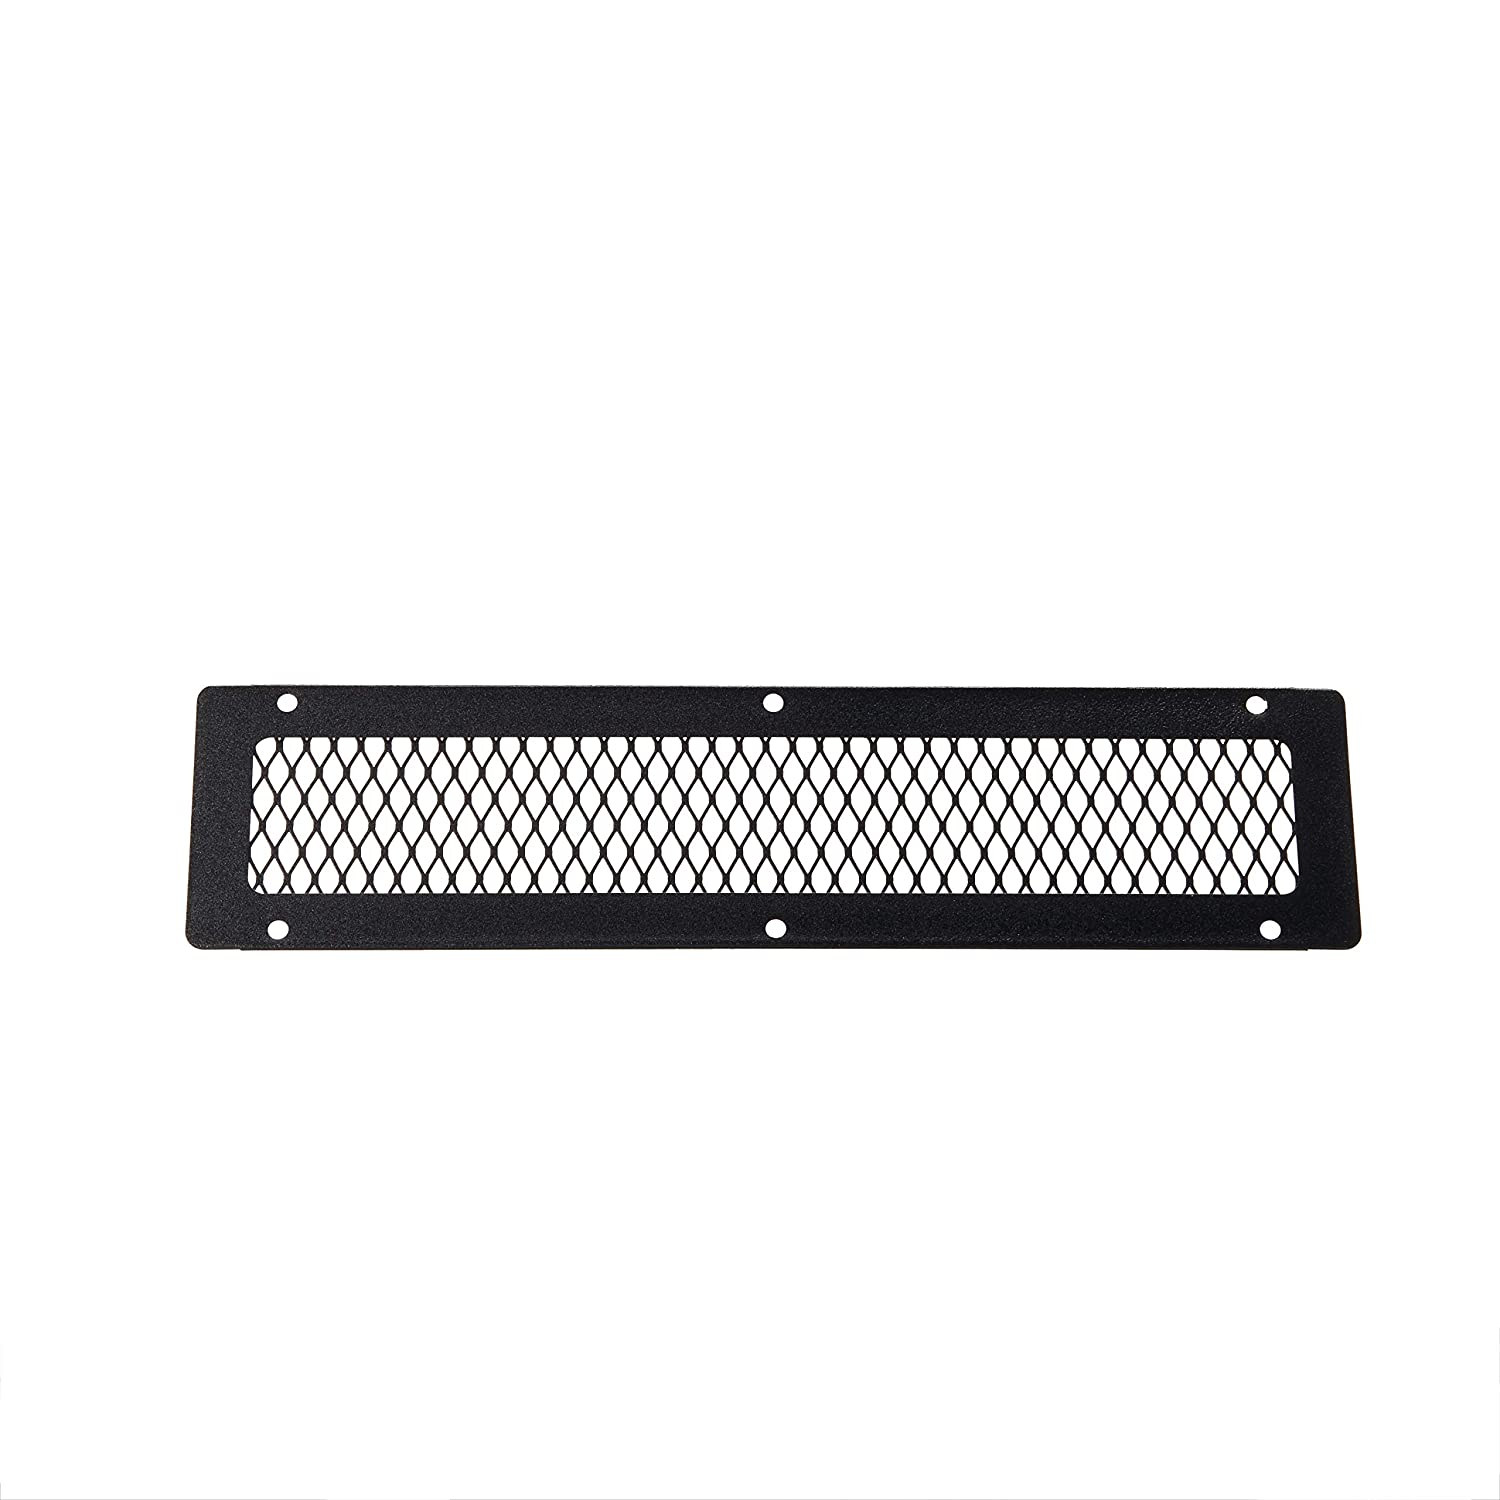 HY-C VG0416G-1G Galvanized Steel Soffit VentGuard with Gray Wildlife Exclusion Screen 16 x 4